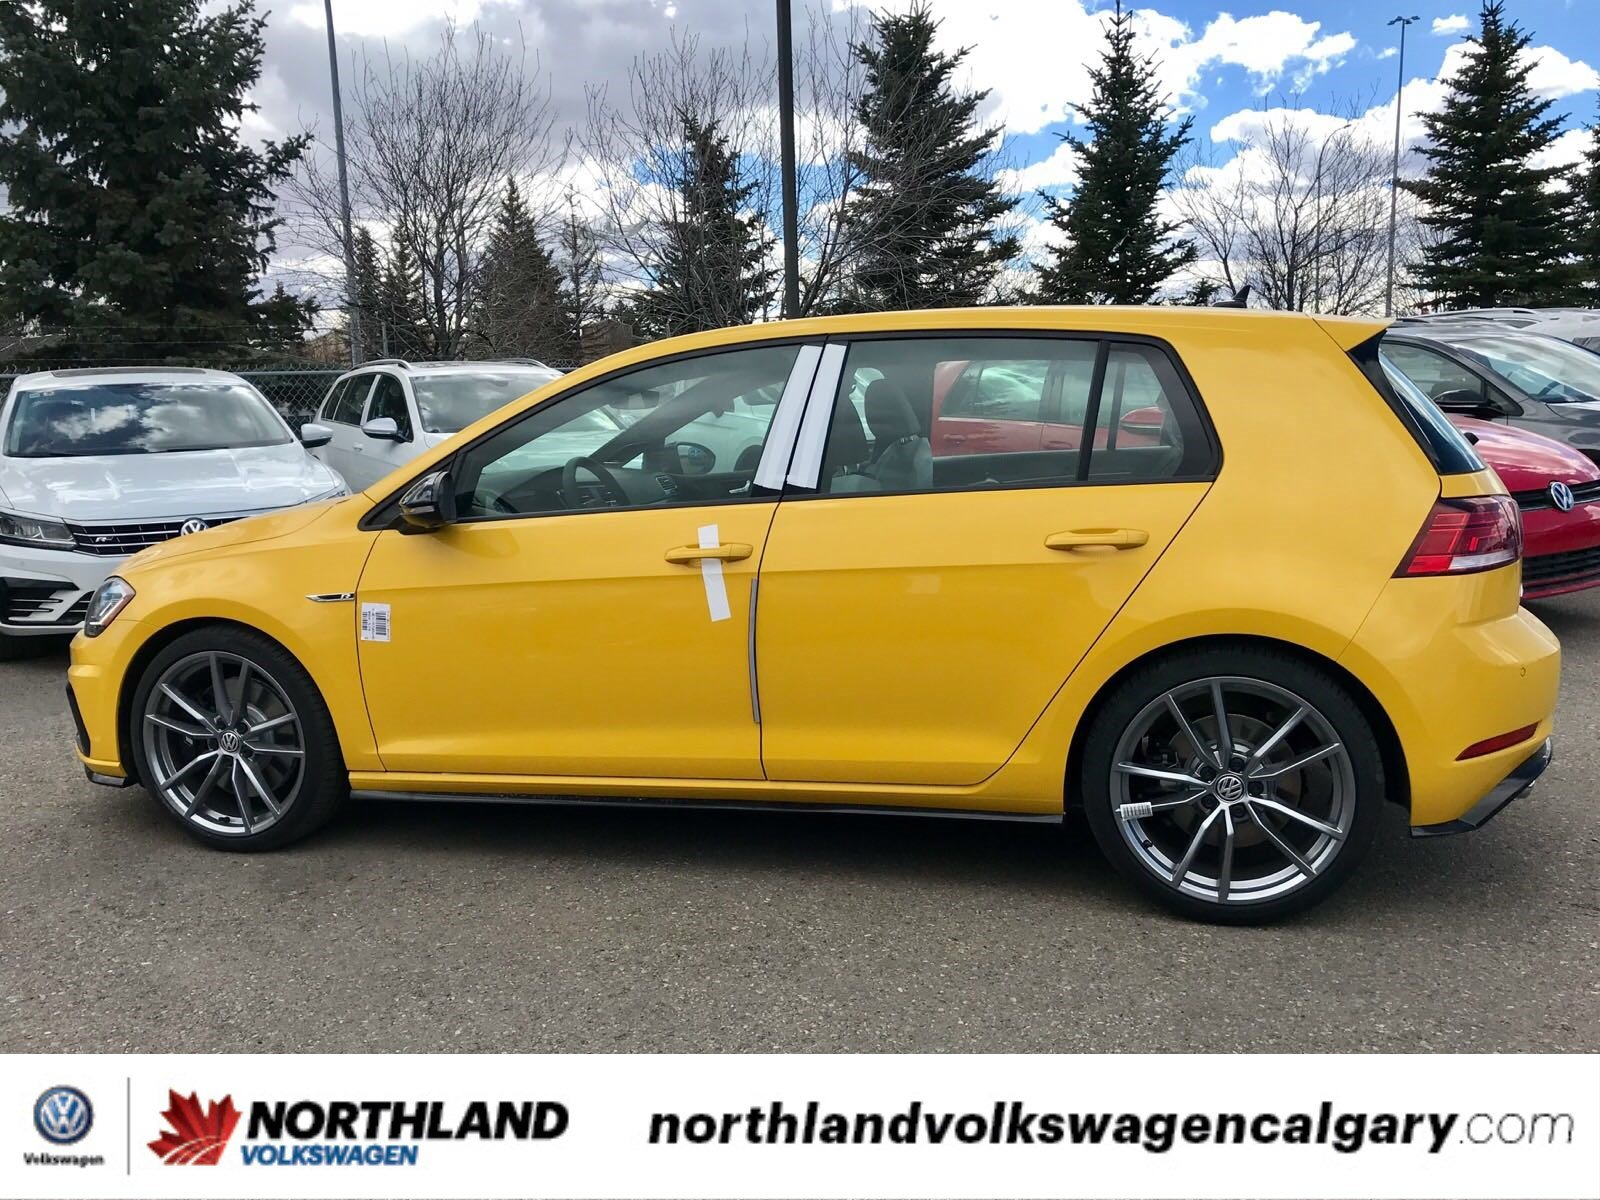 L132, 9150 - GINSTER YELLOW, GINSTERGELB (GOLF R)-3.jpg